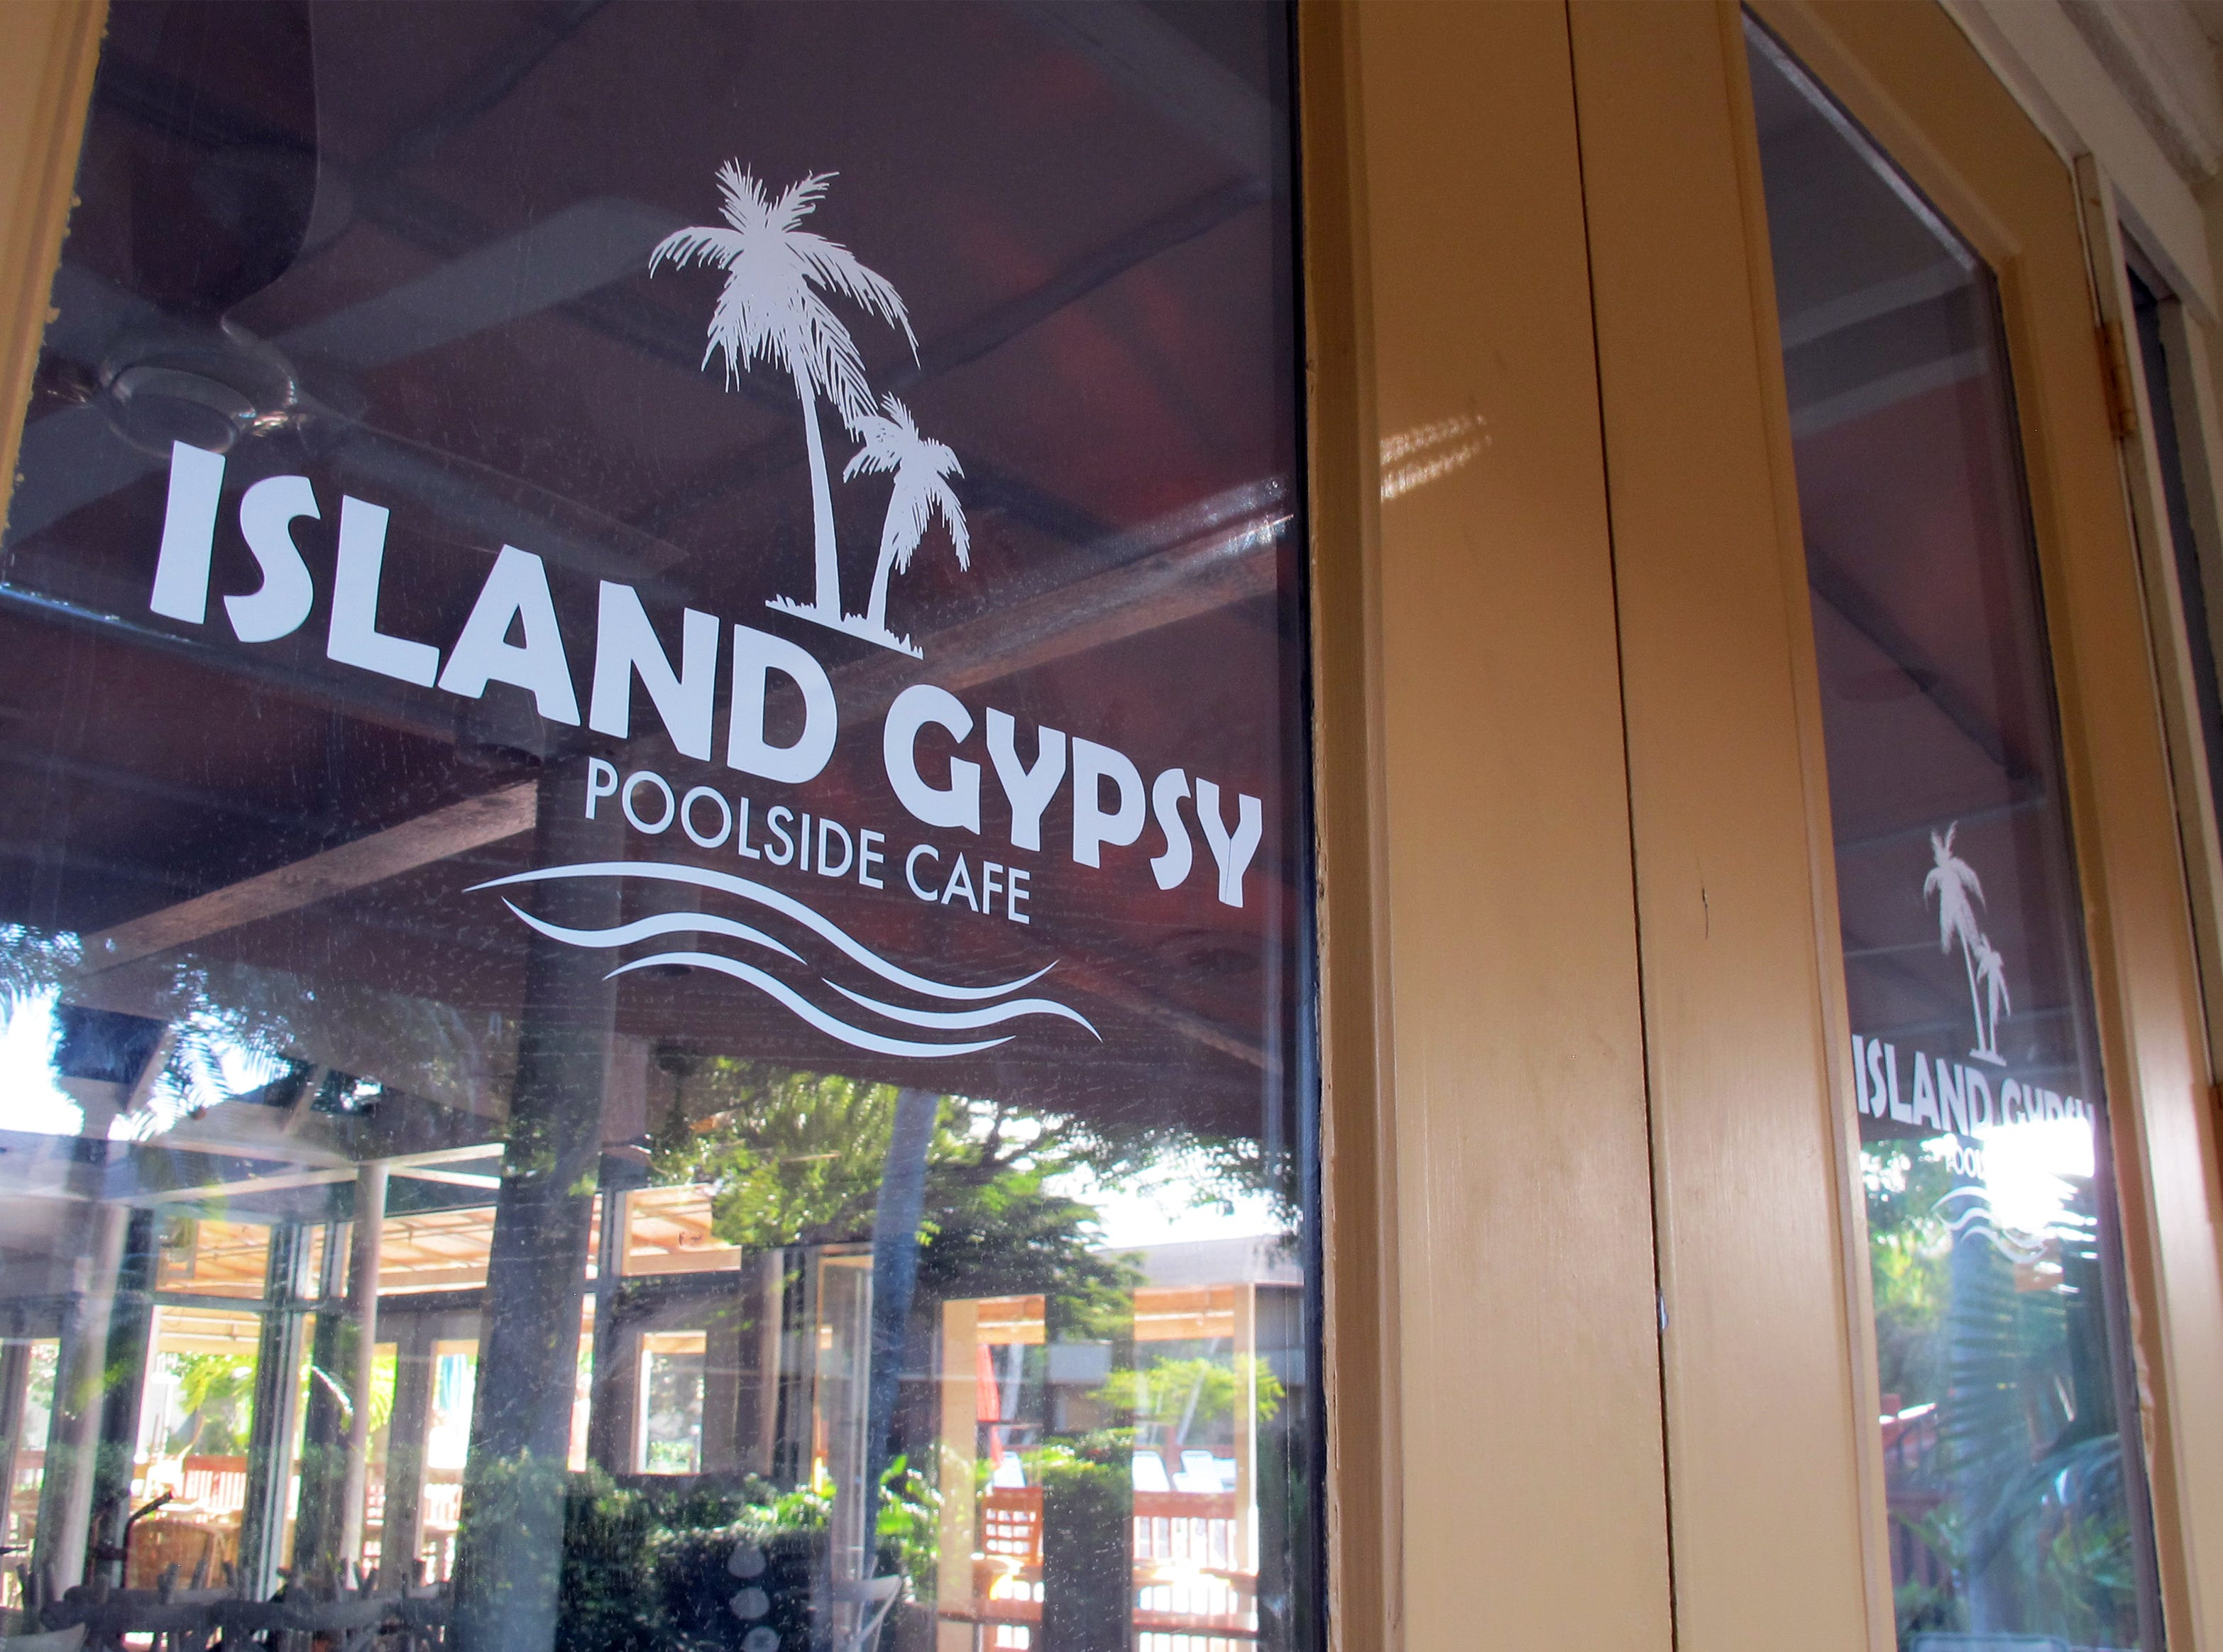 The Island Gypsy Poolside Cafe launced in January 2019 at Park Shore Resort in Naples.